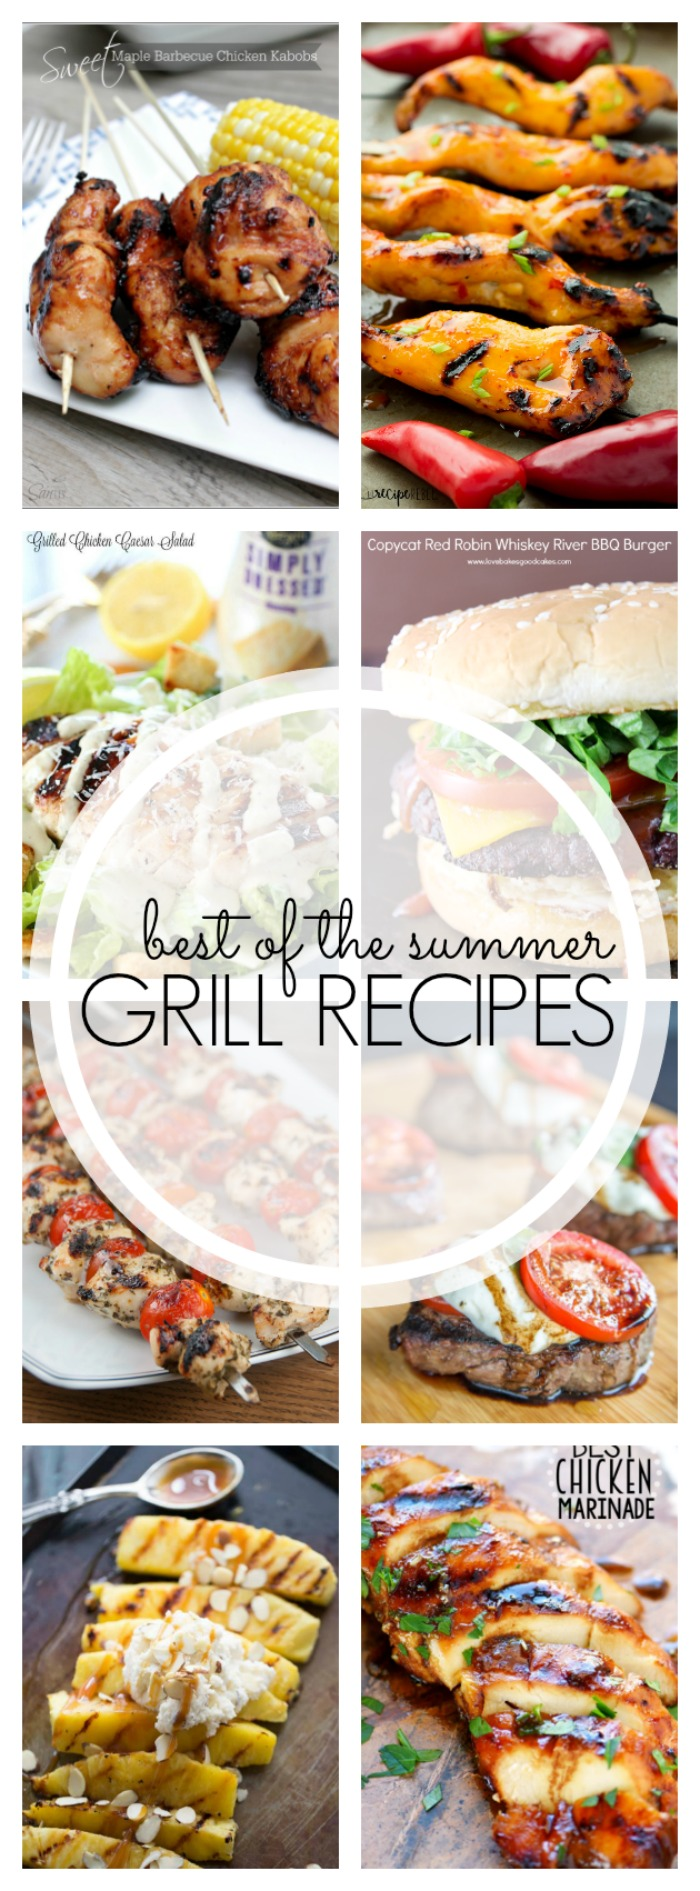 I've been a grilling fool this year. I've been making everything from pizzas to chicken & grapes on our little stove top Weber grill! Now it's time to light those coals or crank the propane and treat yourself to 25 of the Best Grilling Recipes for Summer!